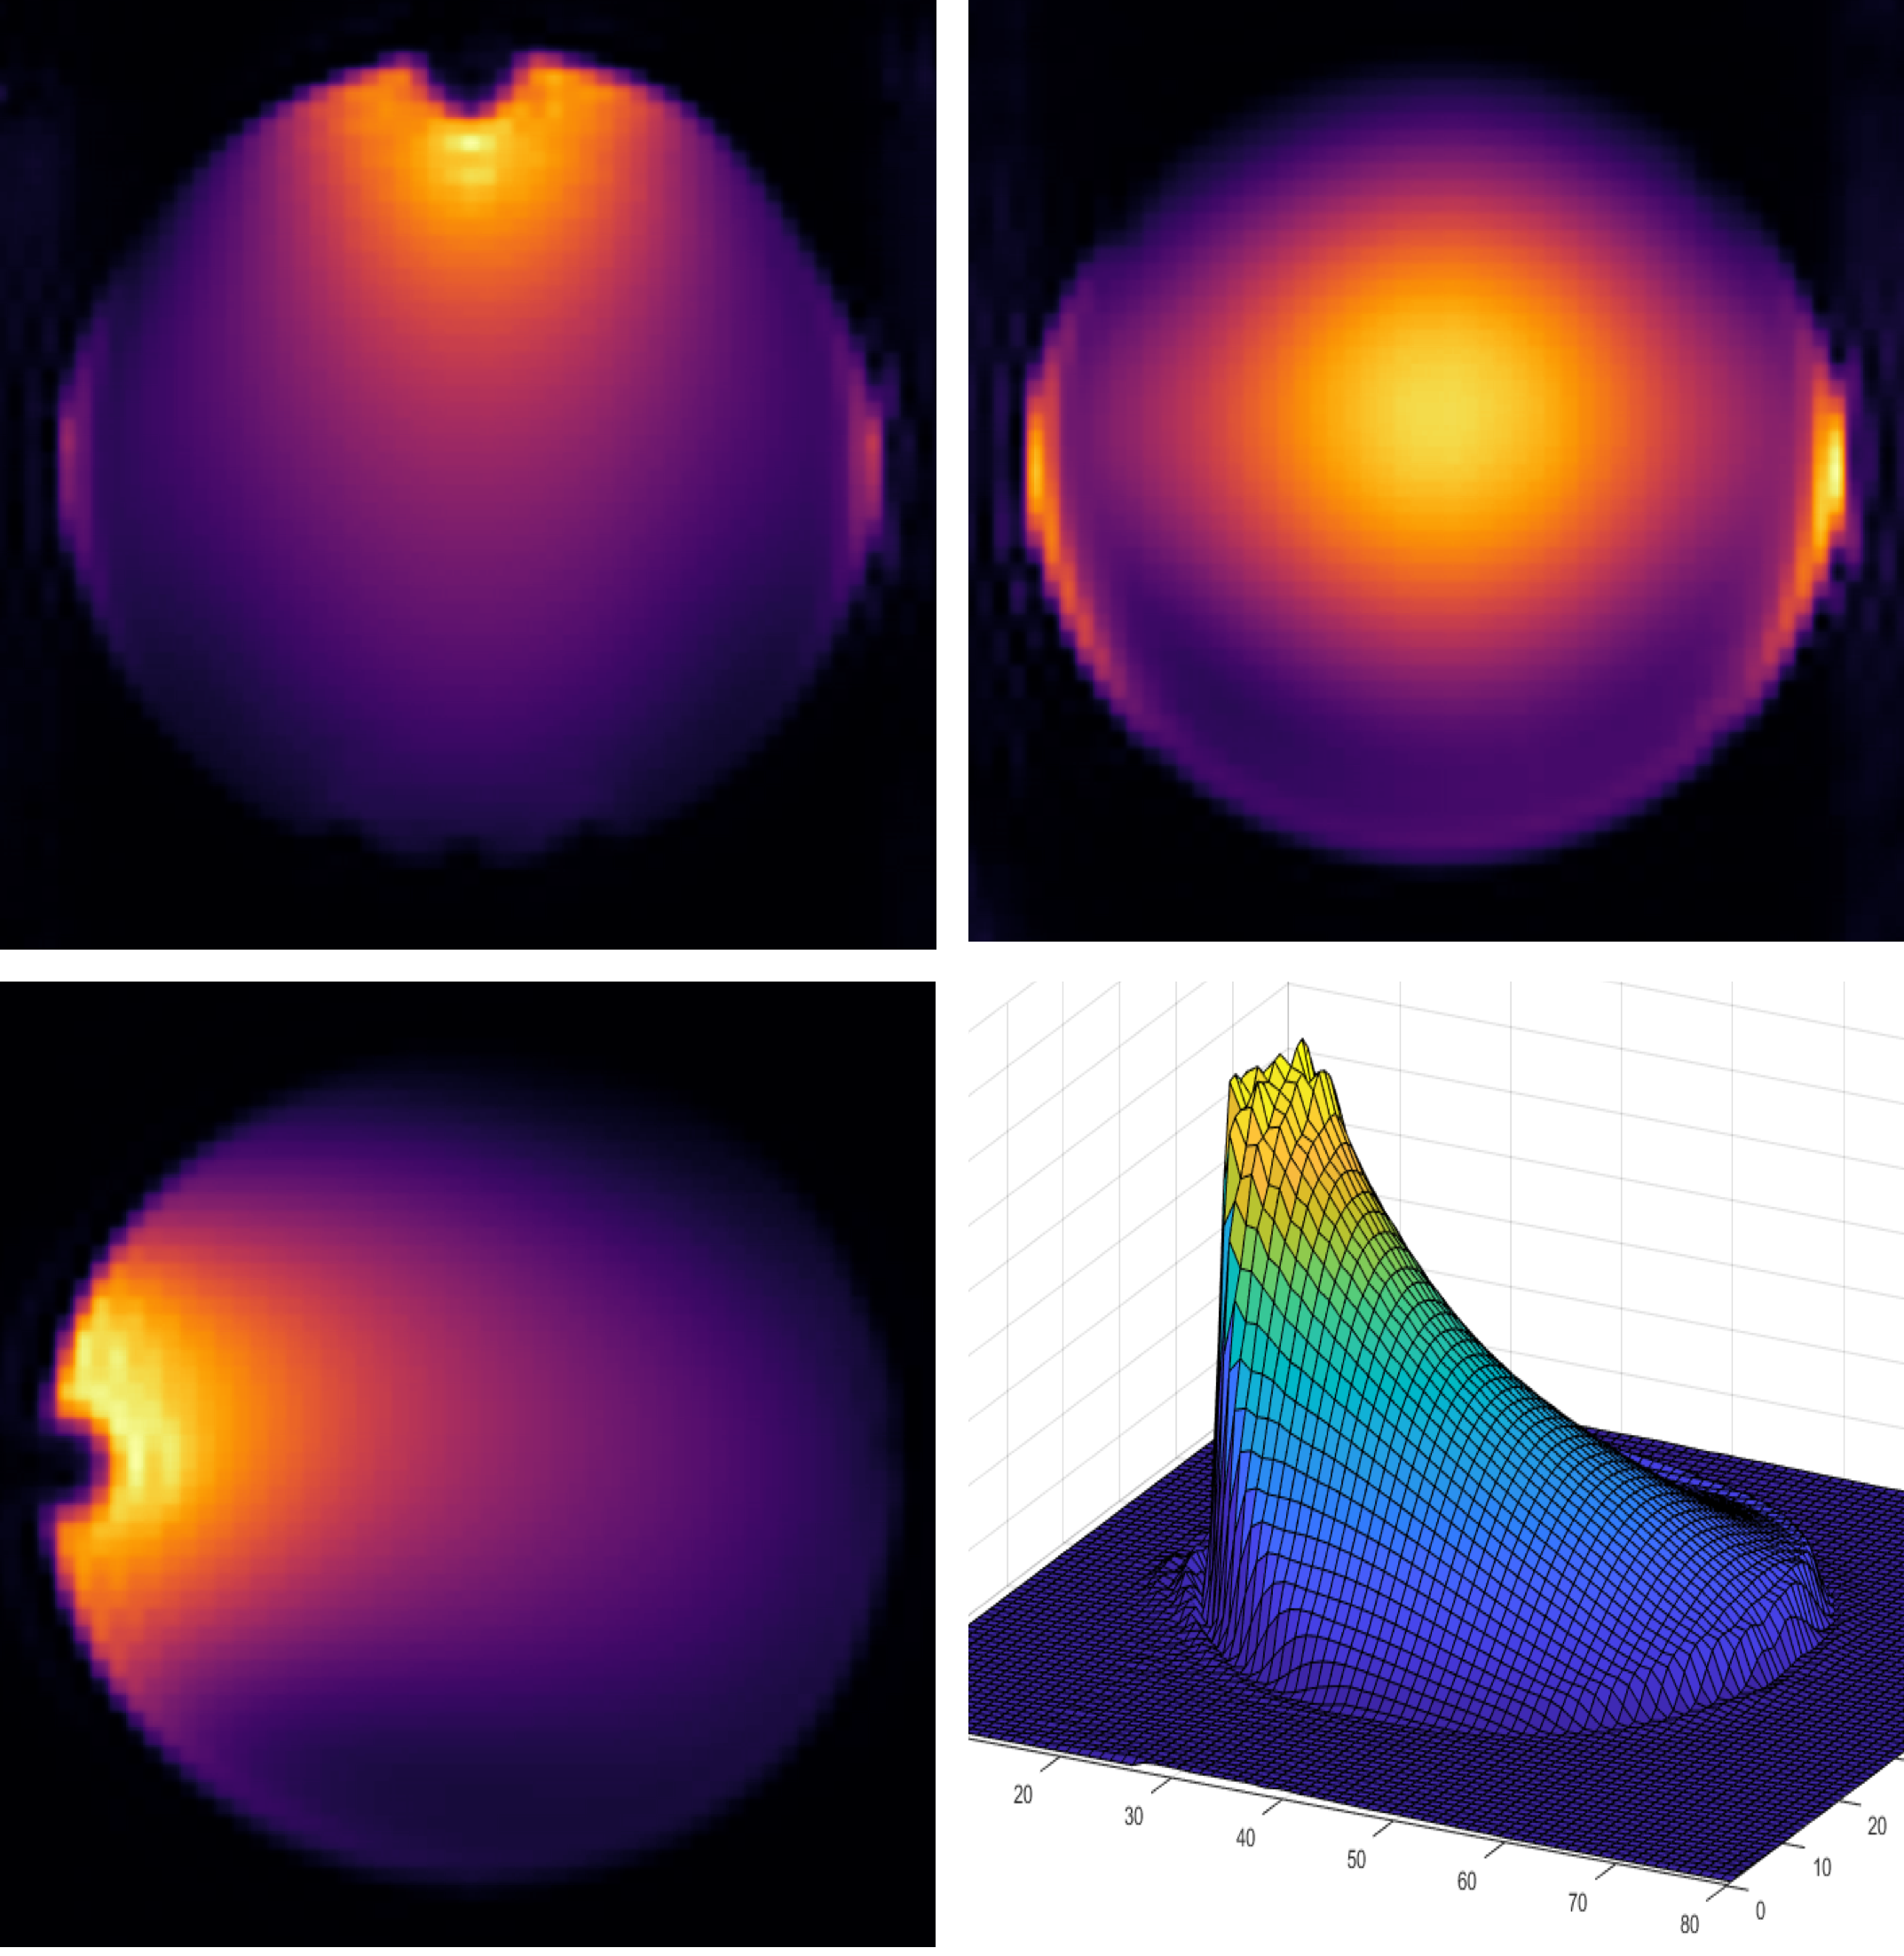 Construction of a Basic Radio Frequency Coil - We built a radio frequency receiver coil to acquire an image of a spherical phantom. February 1. Left: The resulting phantom images in the coronal,sagittal, and transverse plane from a 3D gradient echo sequence on the Phillips 7T. Right: The finished coil situated on top of the spherical phantom consisting of H2O, CuSO4 and NaCl.Team: C Hill, E Bluemke